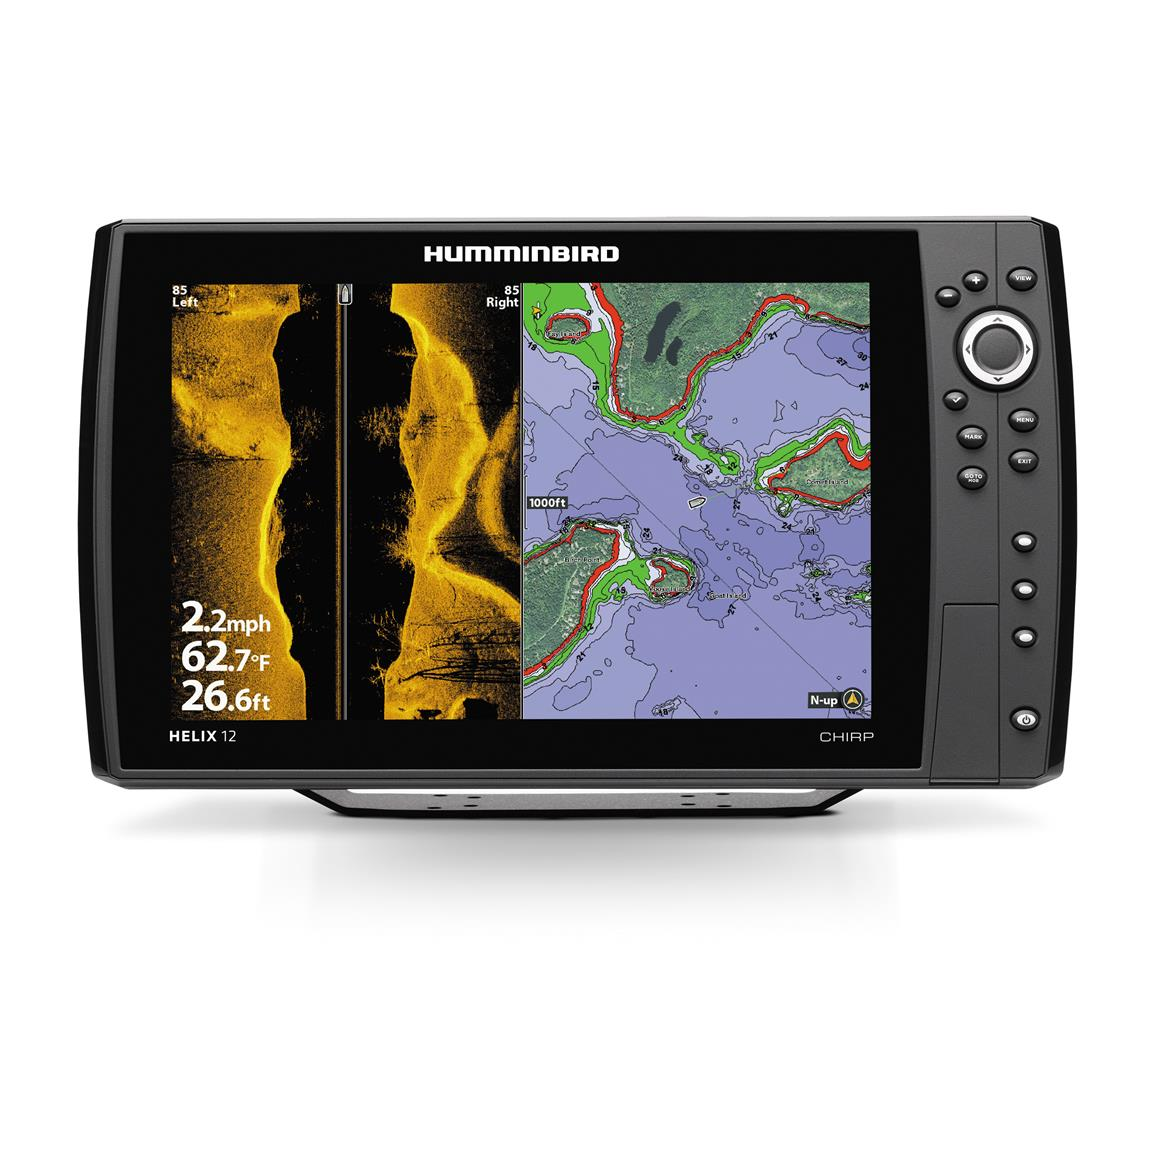 humminbird helix 12 chirp si sonar fish finder gps combo - 657213, Fish Finder